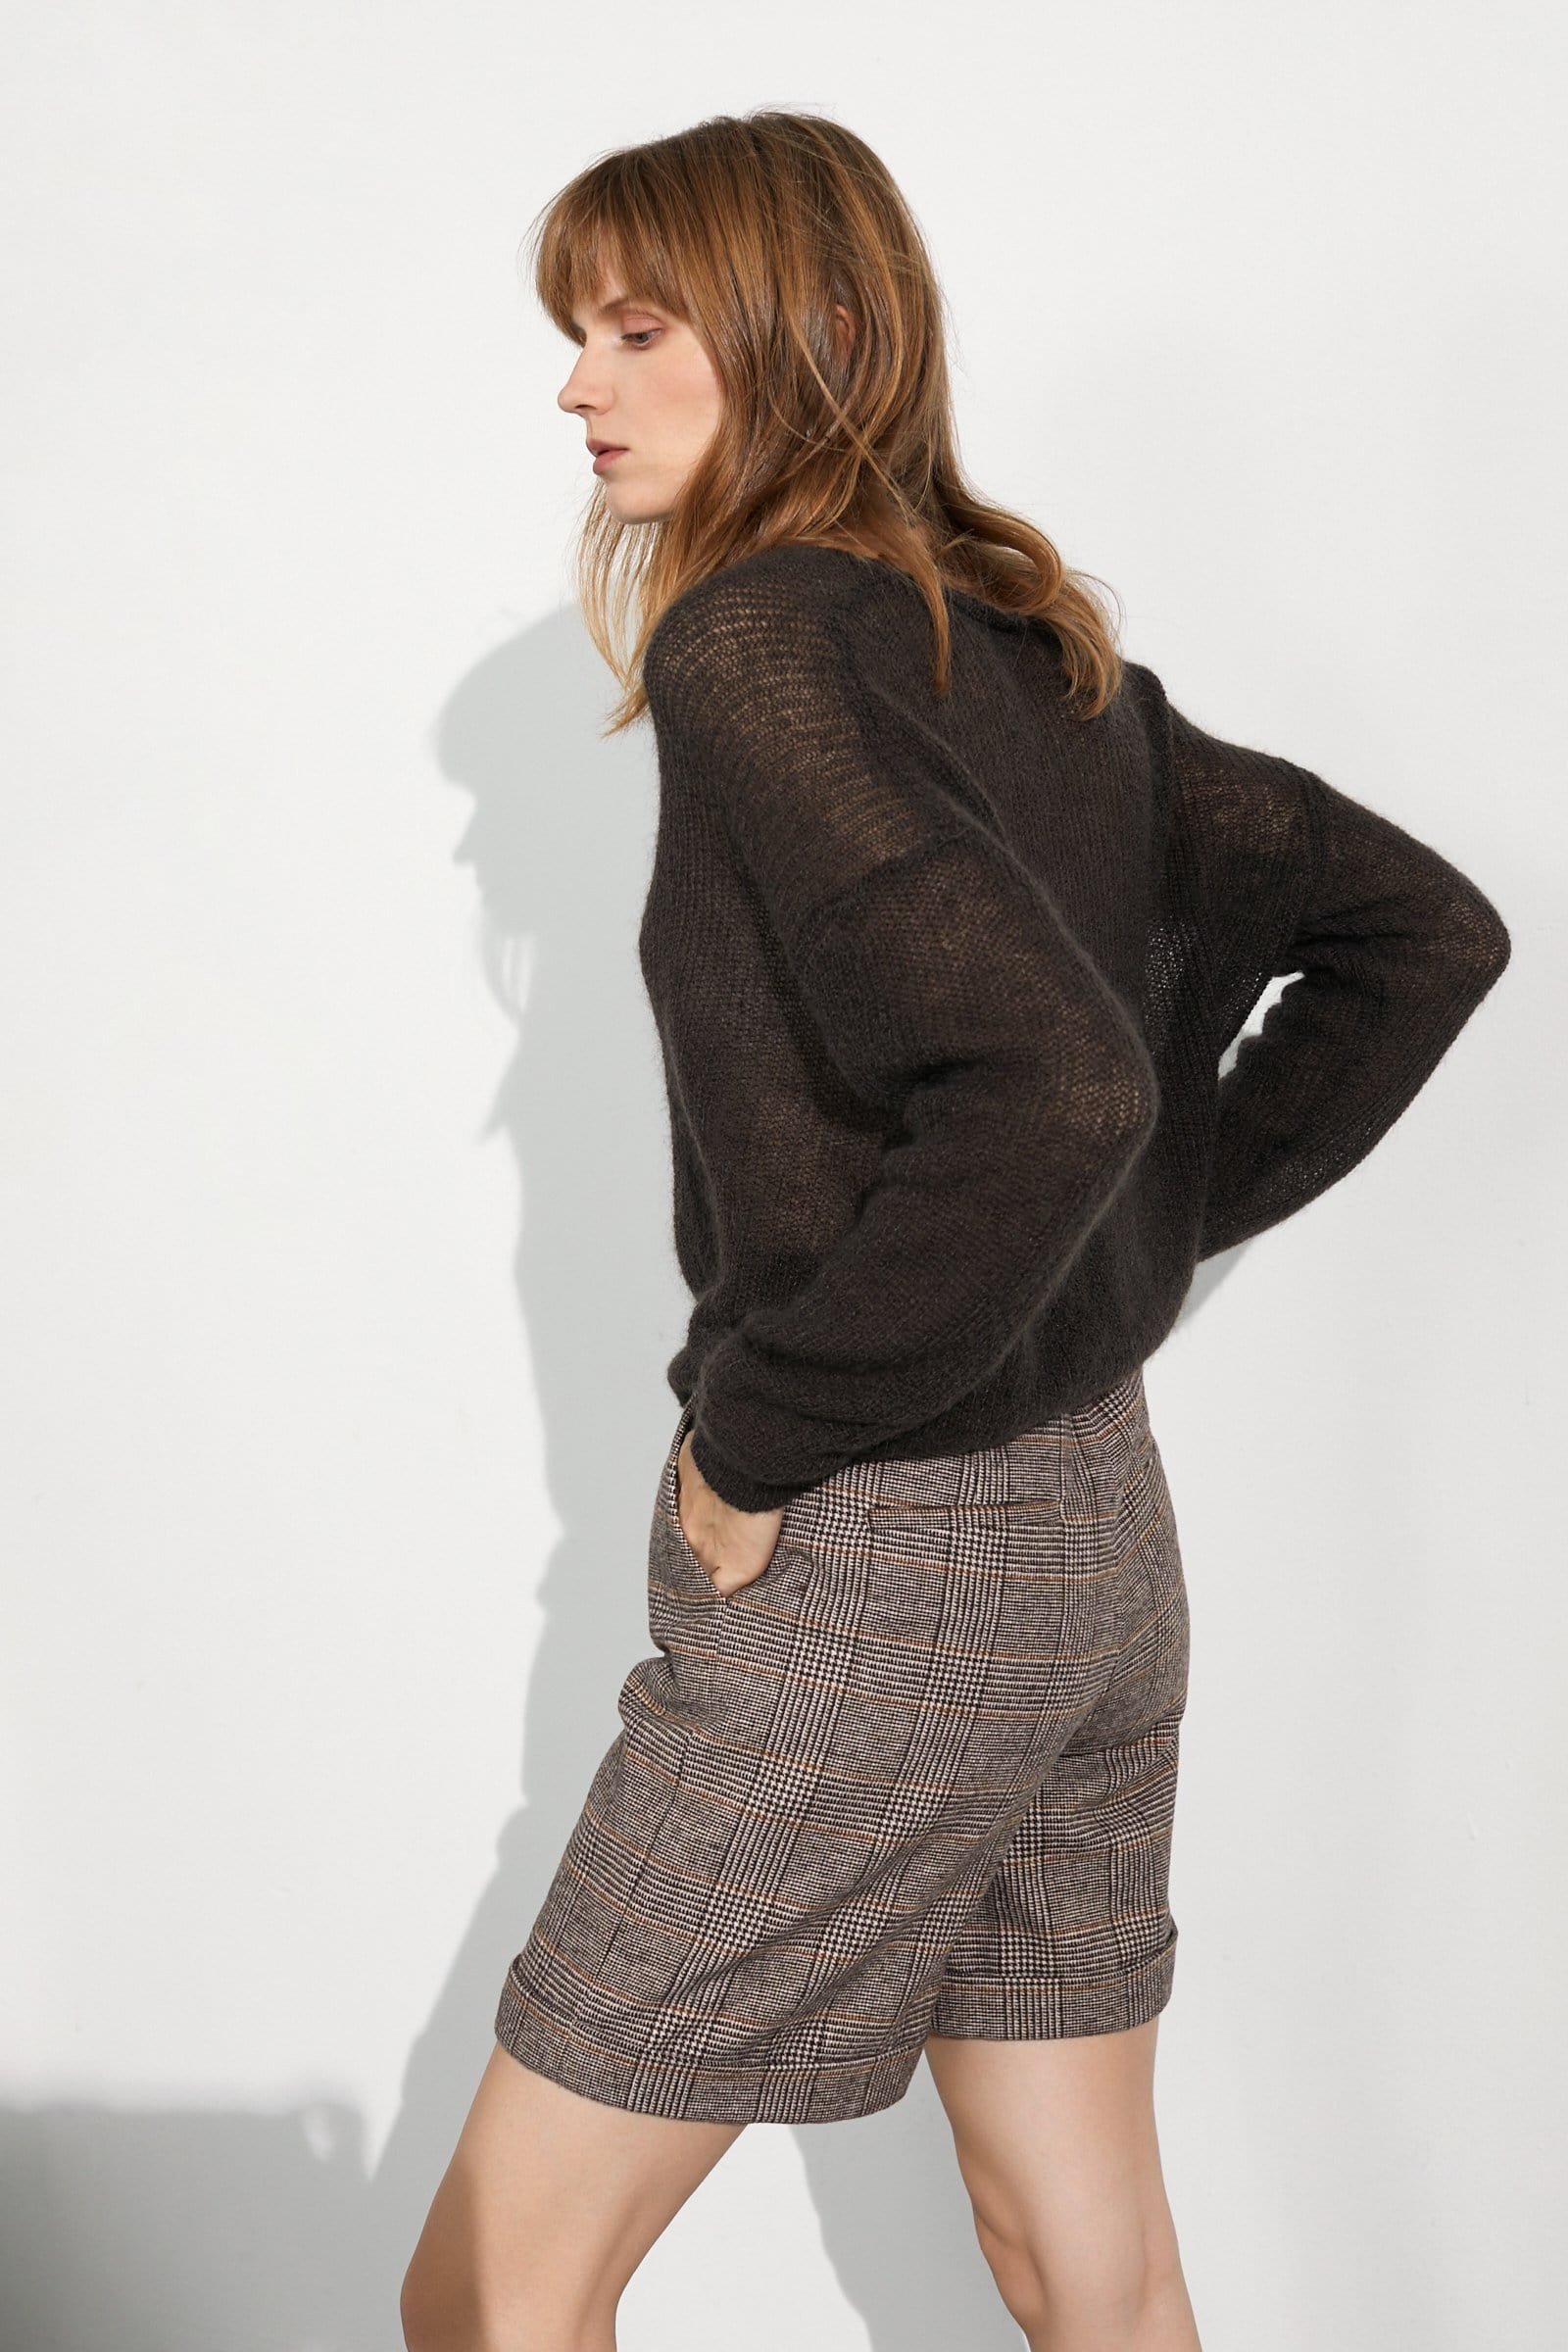 Cozy Chocolate Marled Sweater